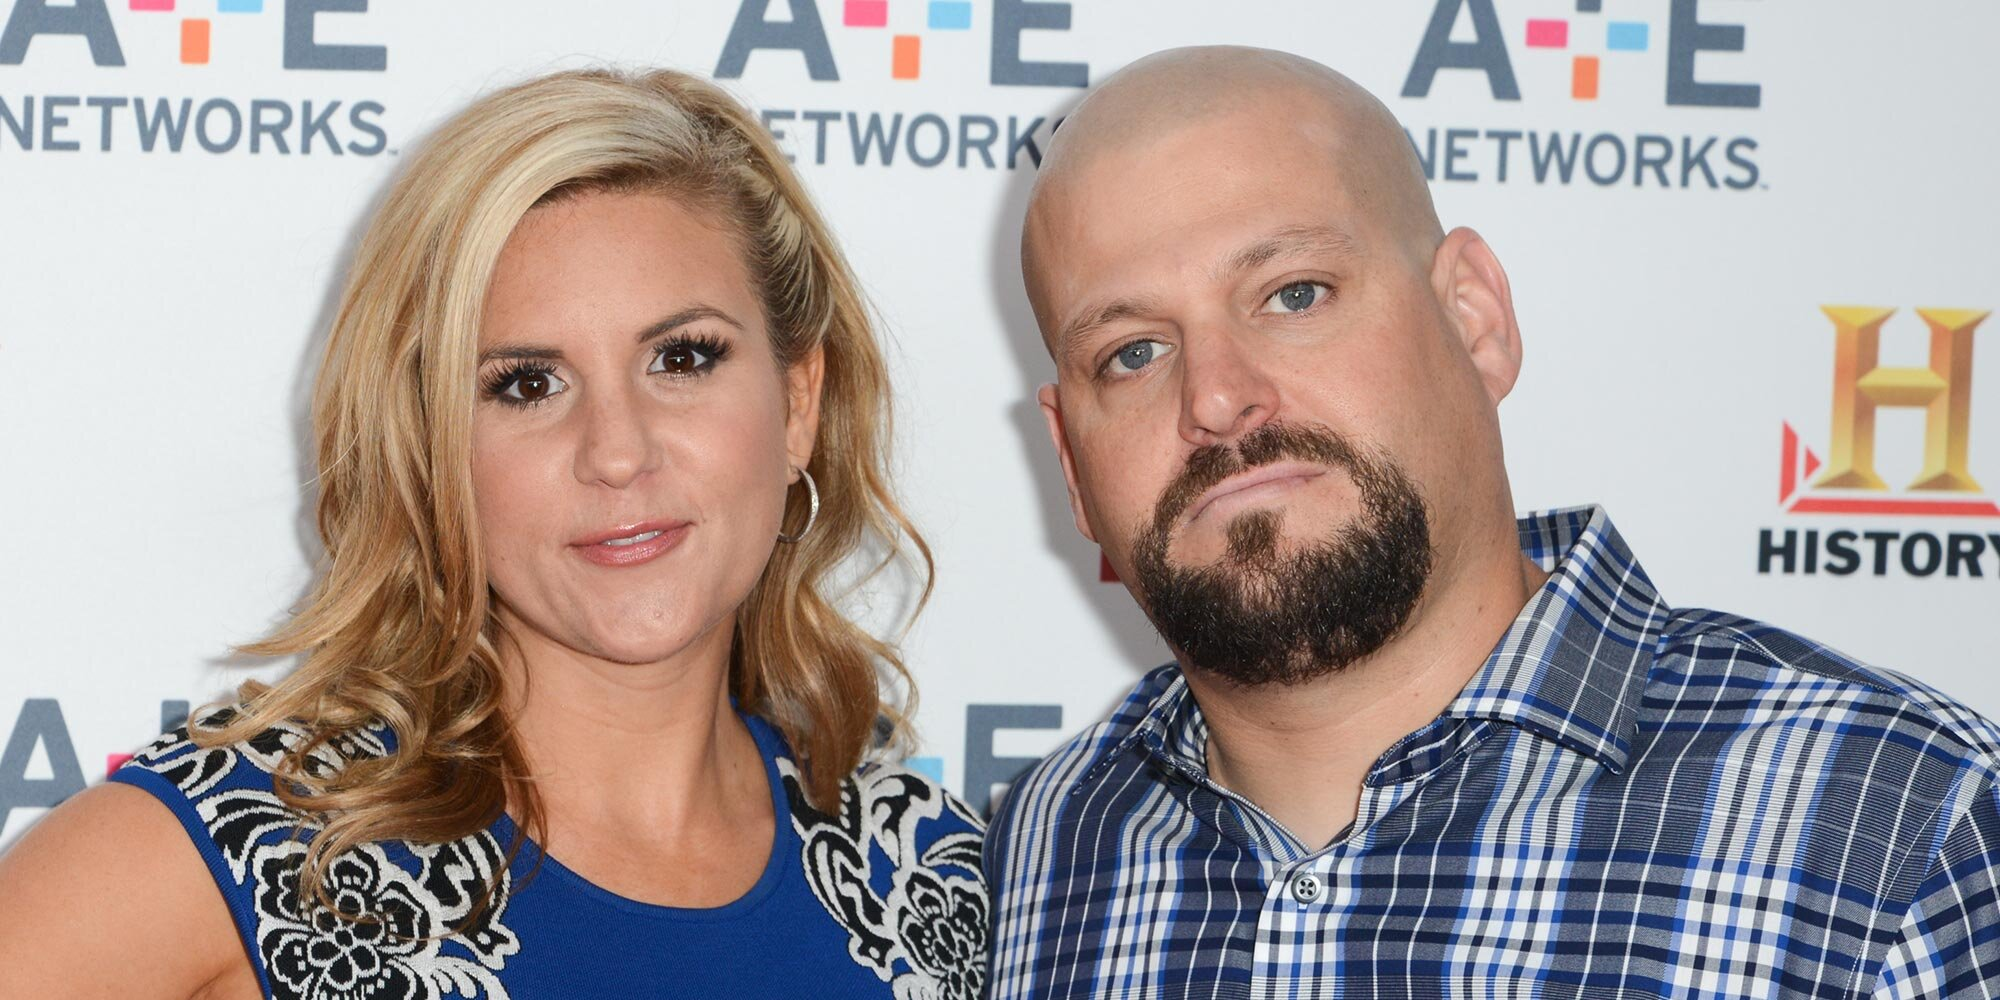 'Storage Wars' star Jarrod Schulz charged with domestic violence against Brandi Passante